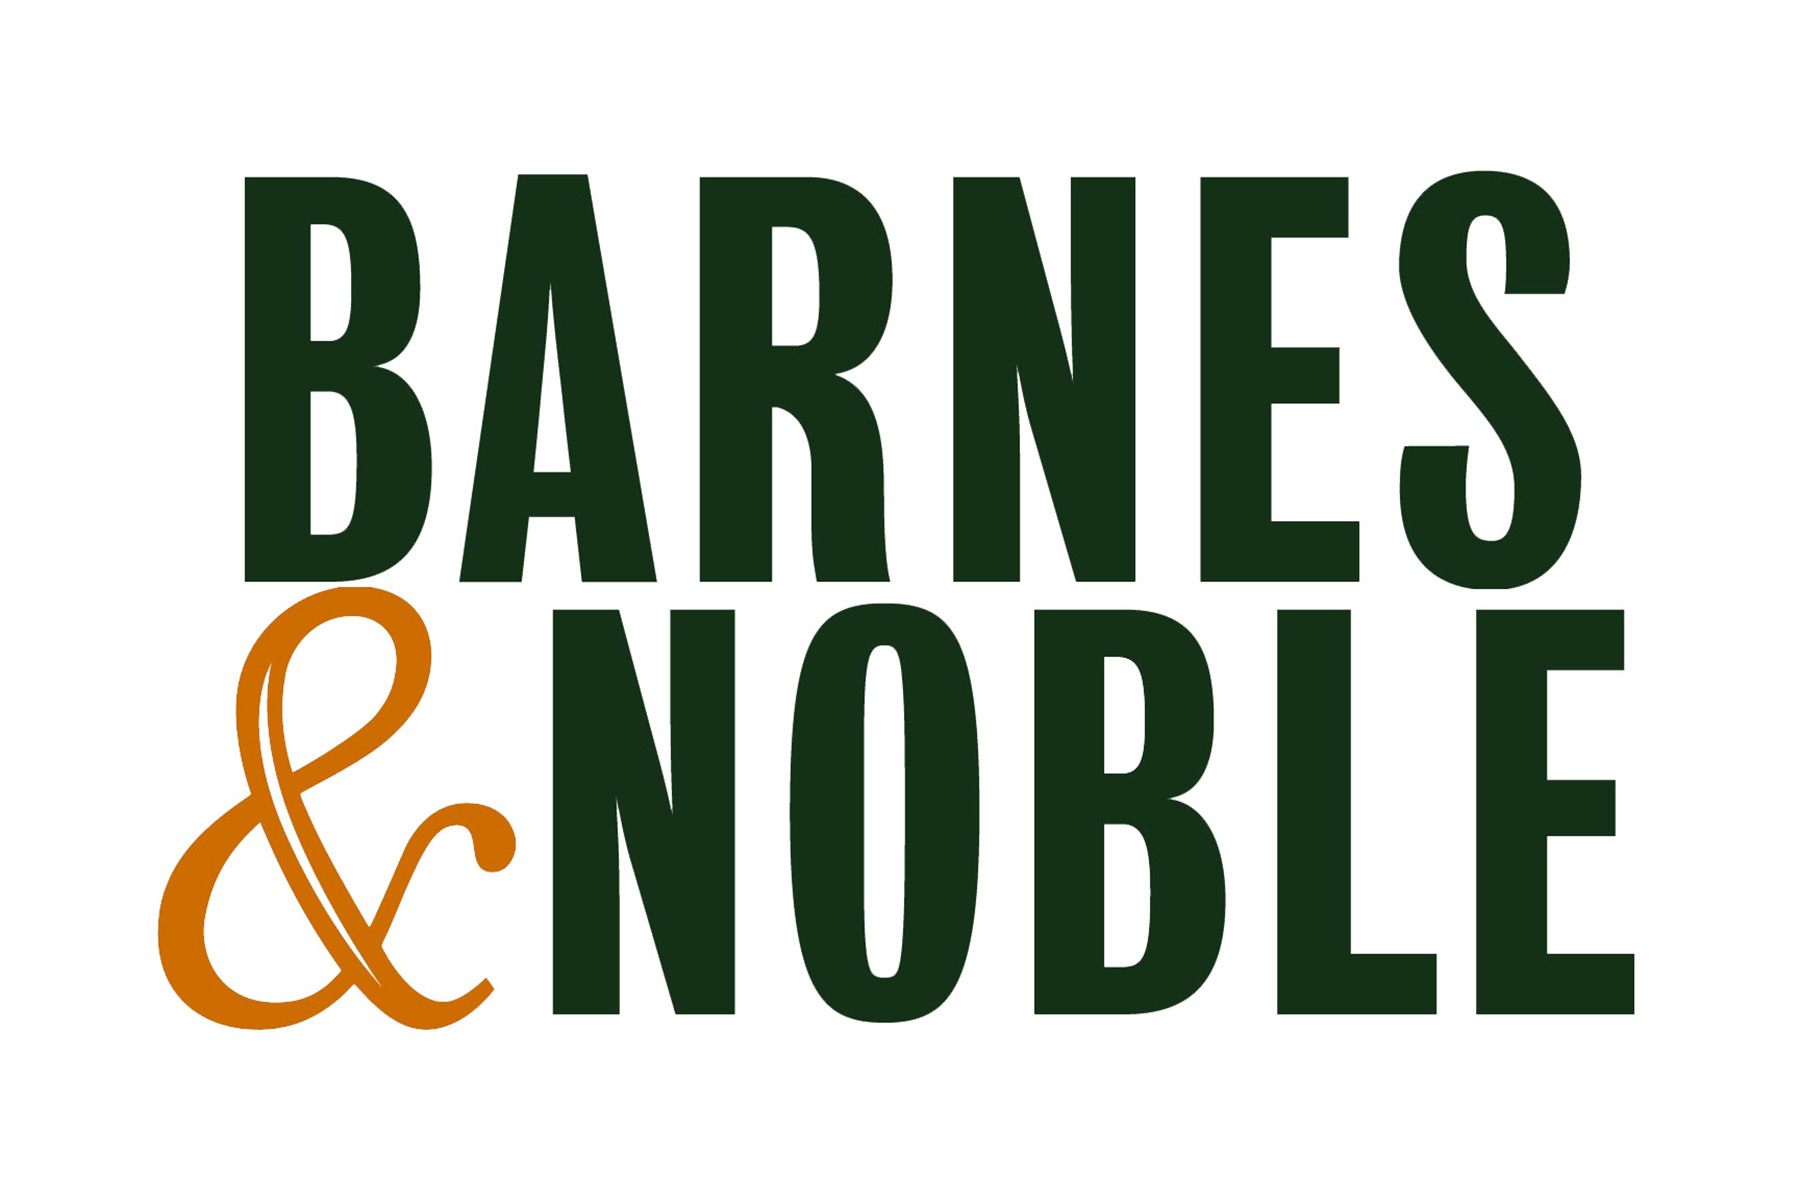 As the world's largest bookstore chain, Barnes & Noble has all the latest books, texbooks, dvds, music and more. Find online and in-store Barnes and Noble Coupons for discounts including daily sales and special offers for various titles including NOOK ebooks.